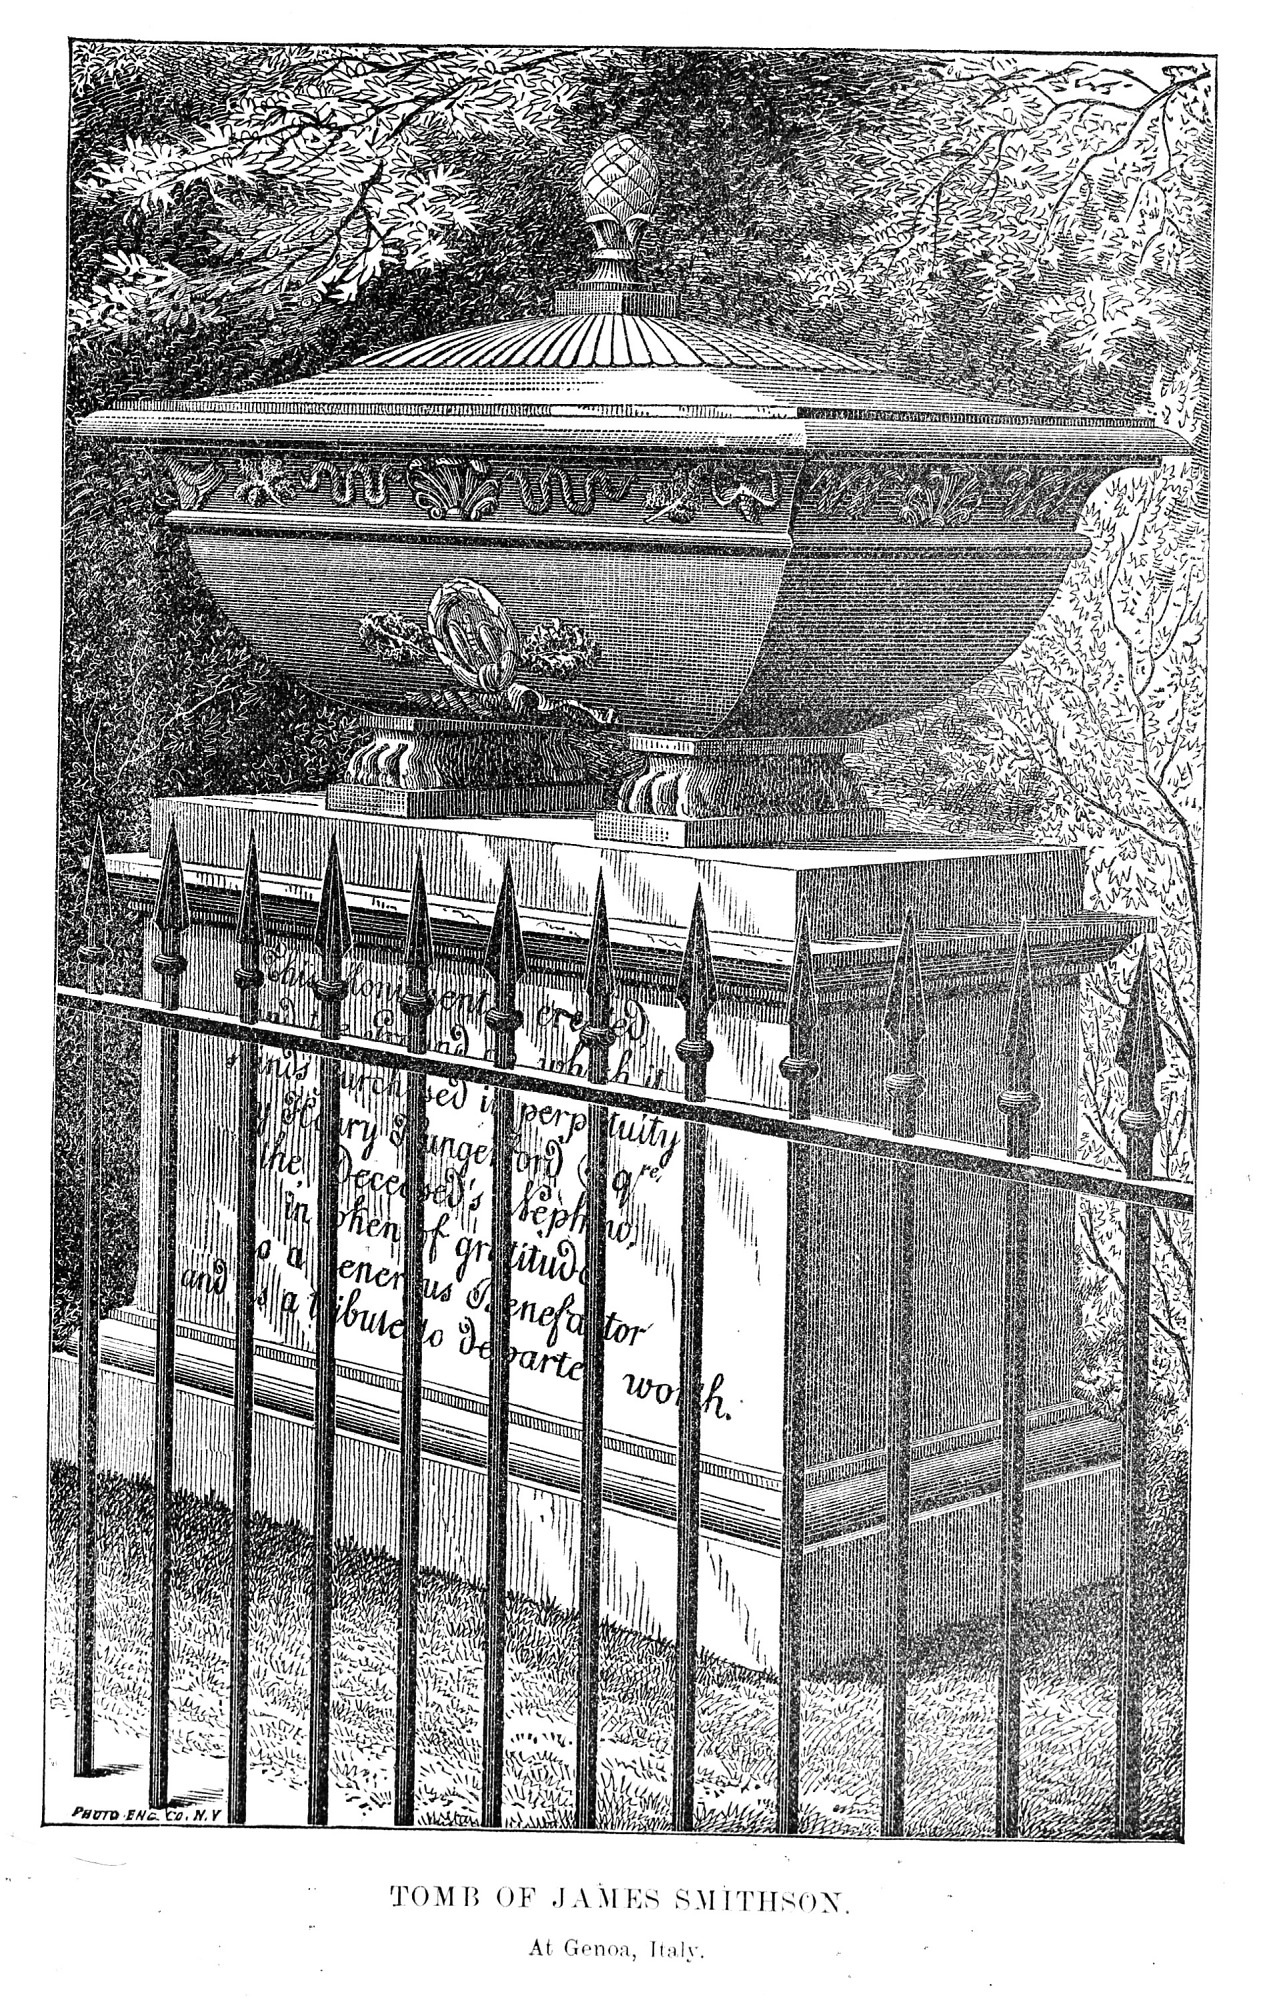 images for James Smithson's Tomb near Genoa, Italy